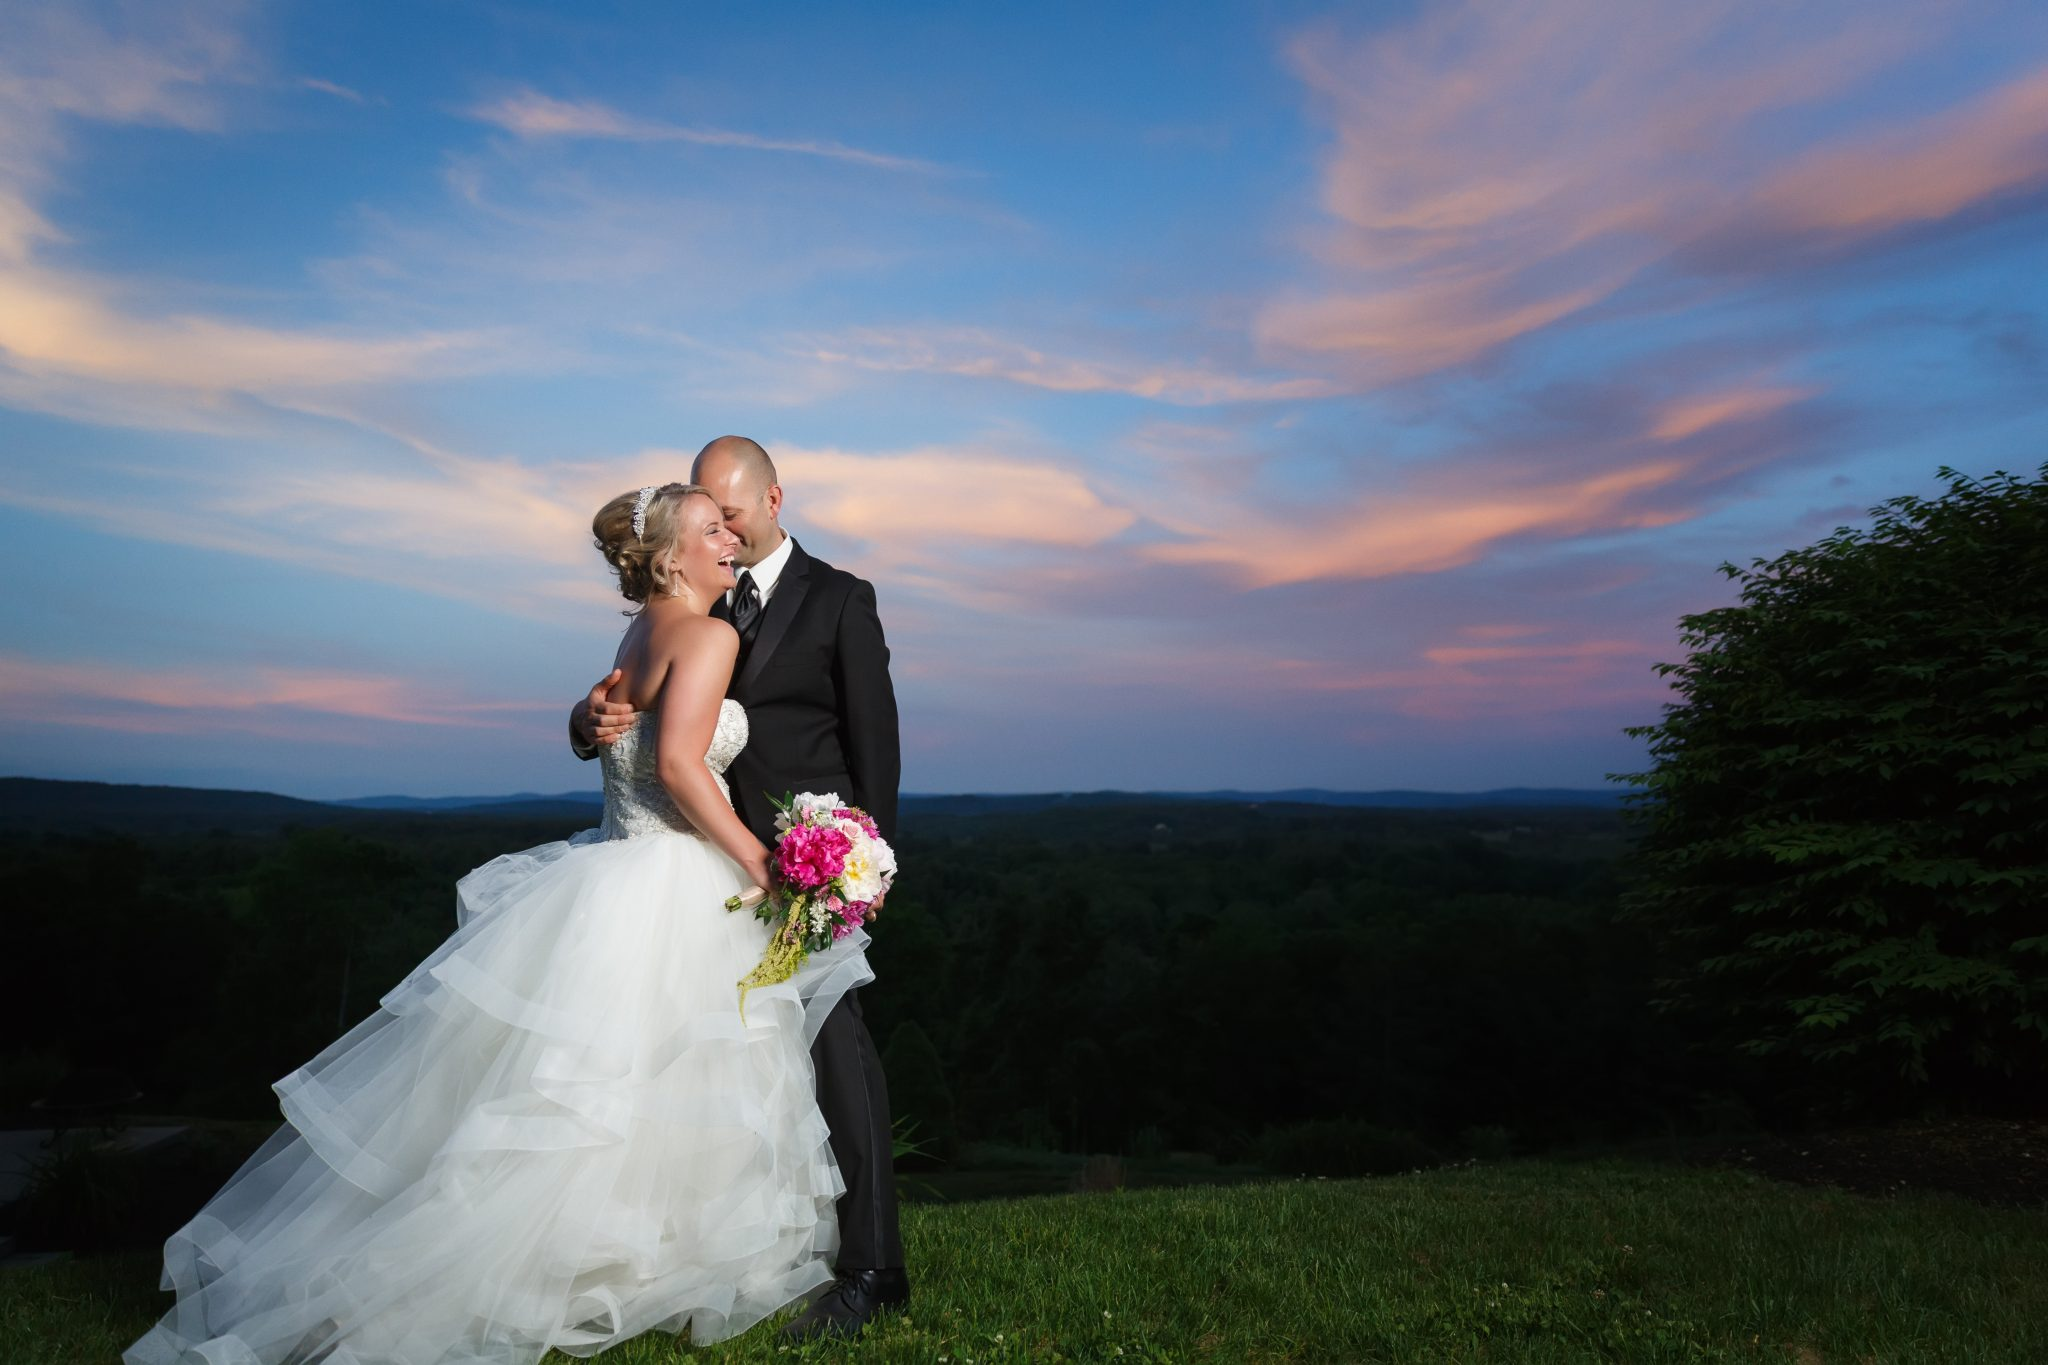 Beautiful bride and groom sunset photo